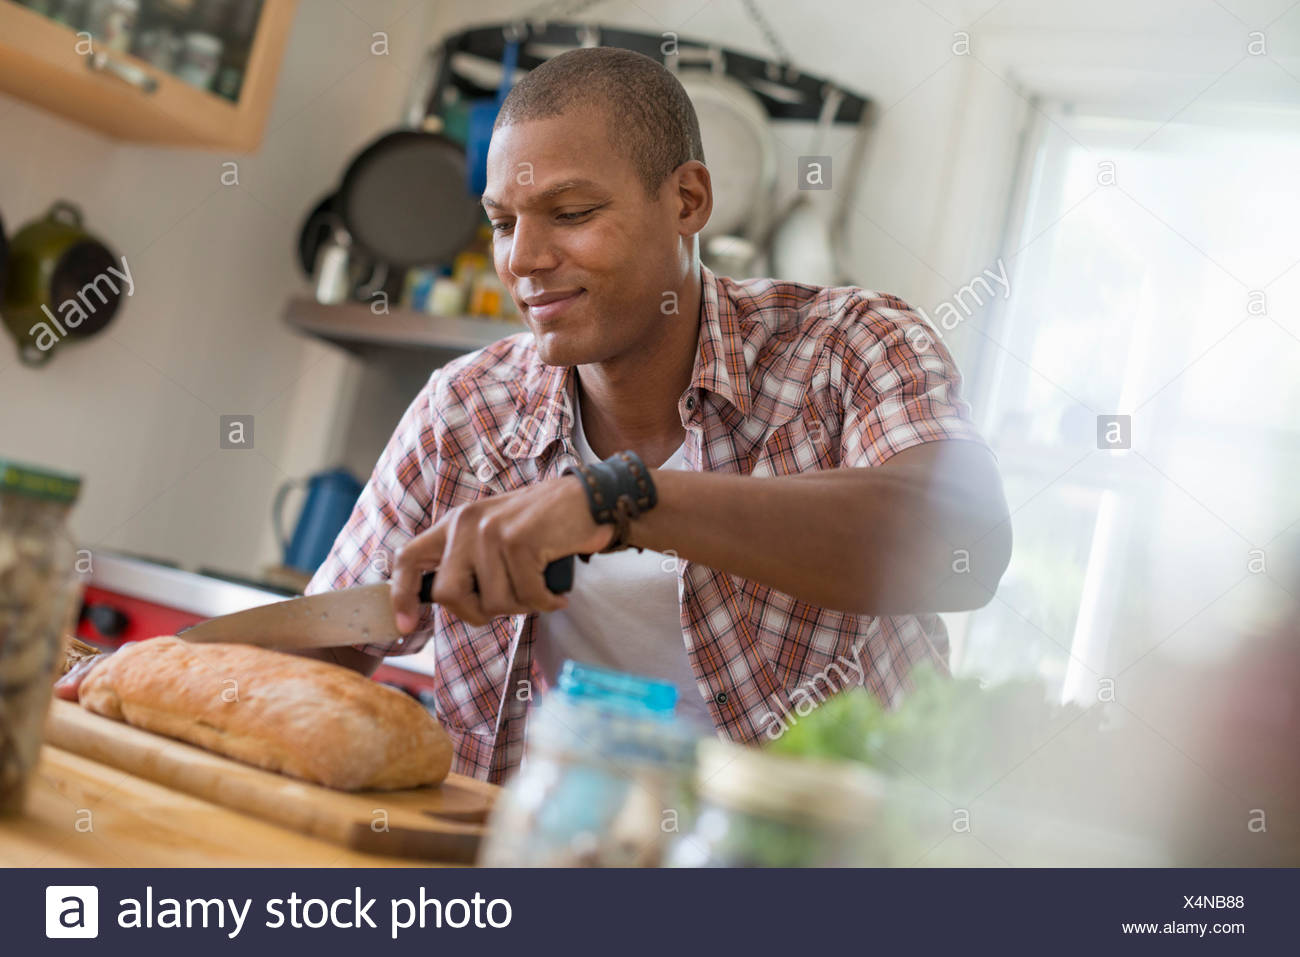 A man in a kitchen slicing a loaf of bread. - Stock Image